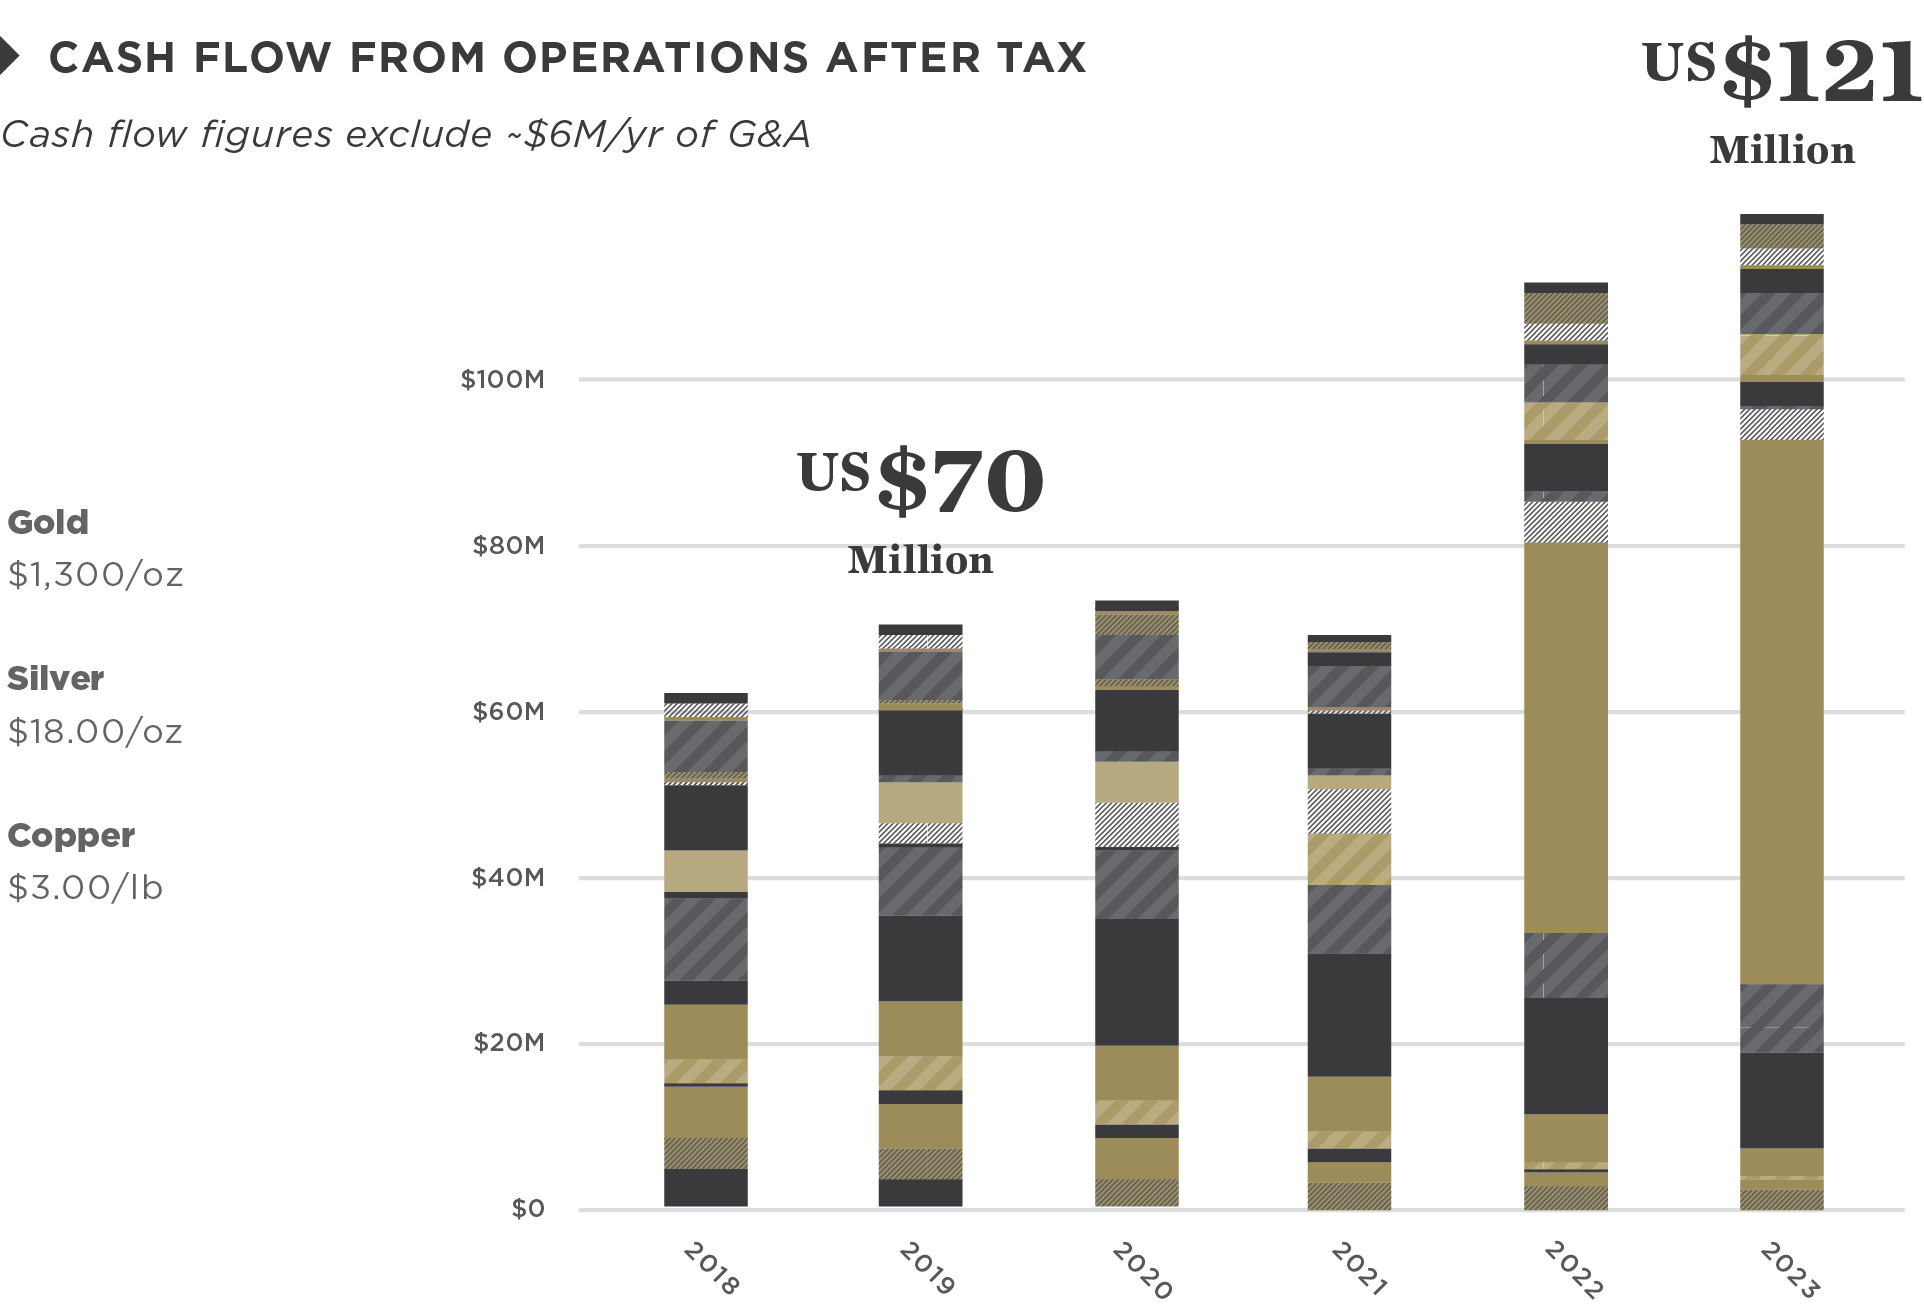 Operating Cash Flow After Tax